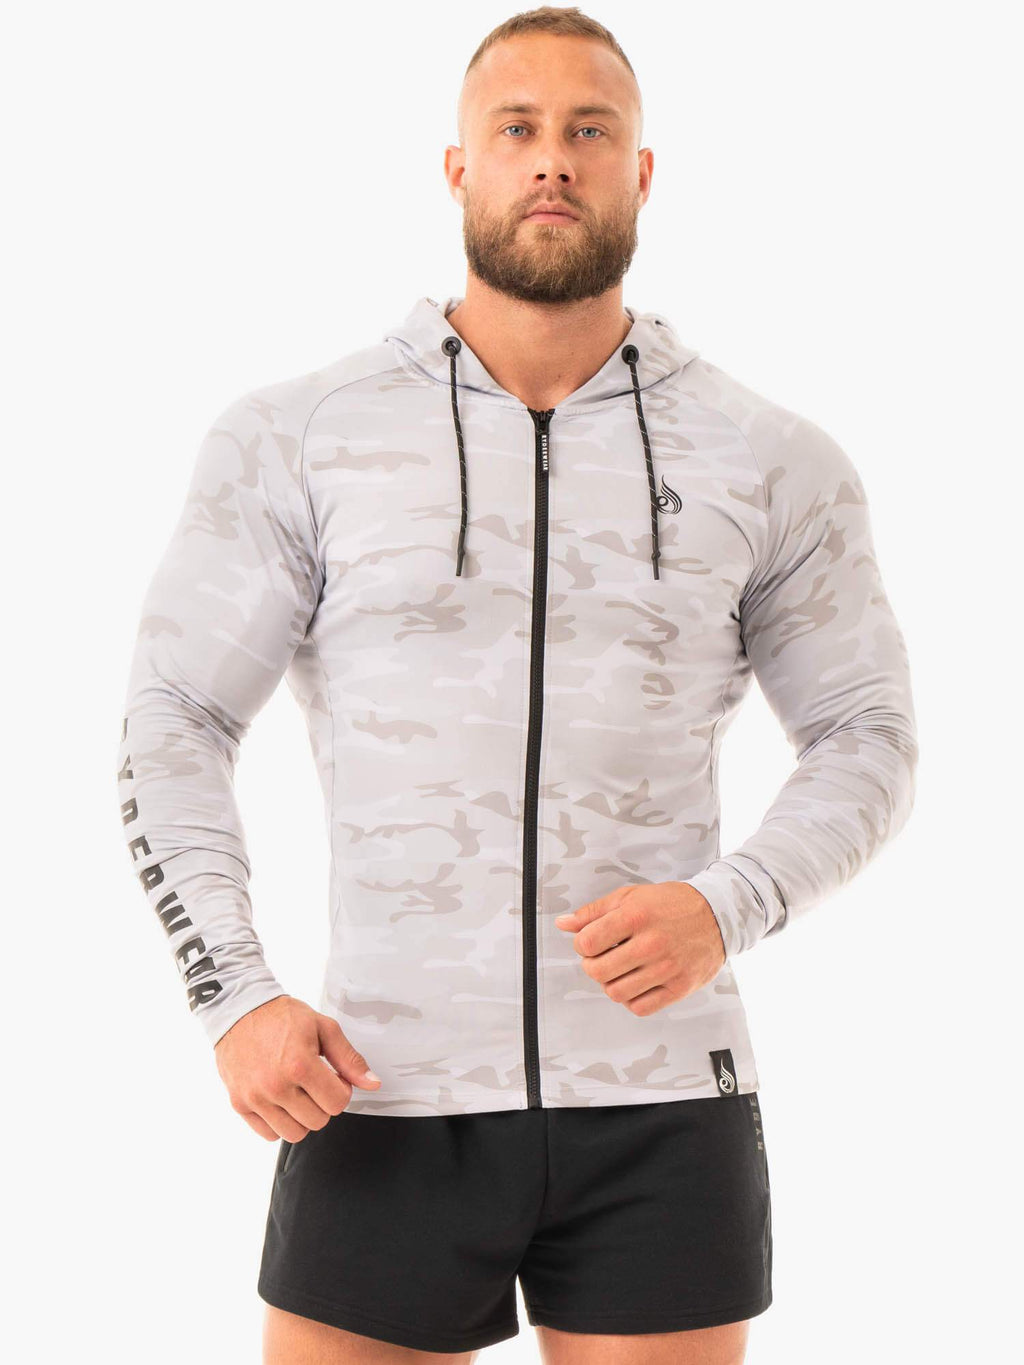 Combat Zip Up Jacket - Grey Camo